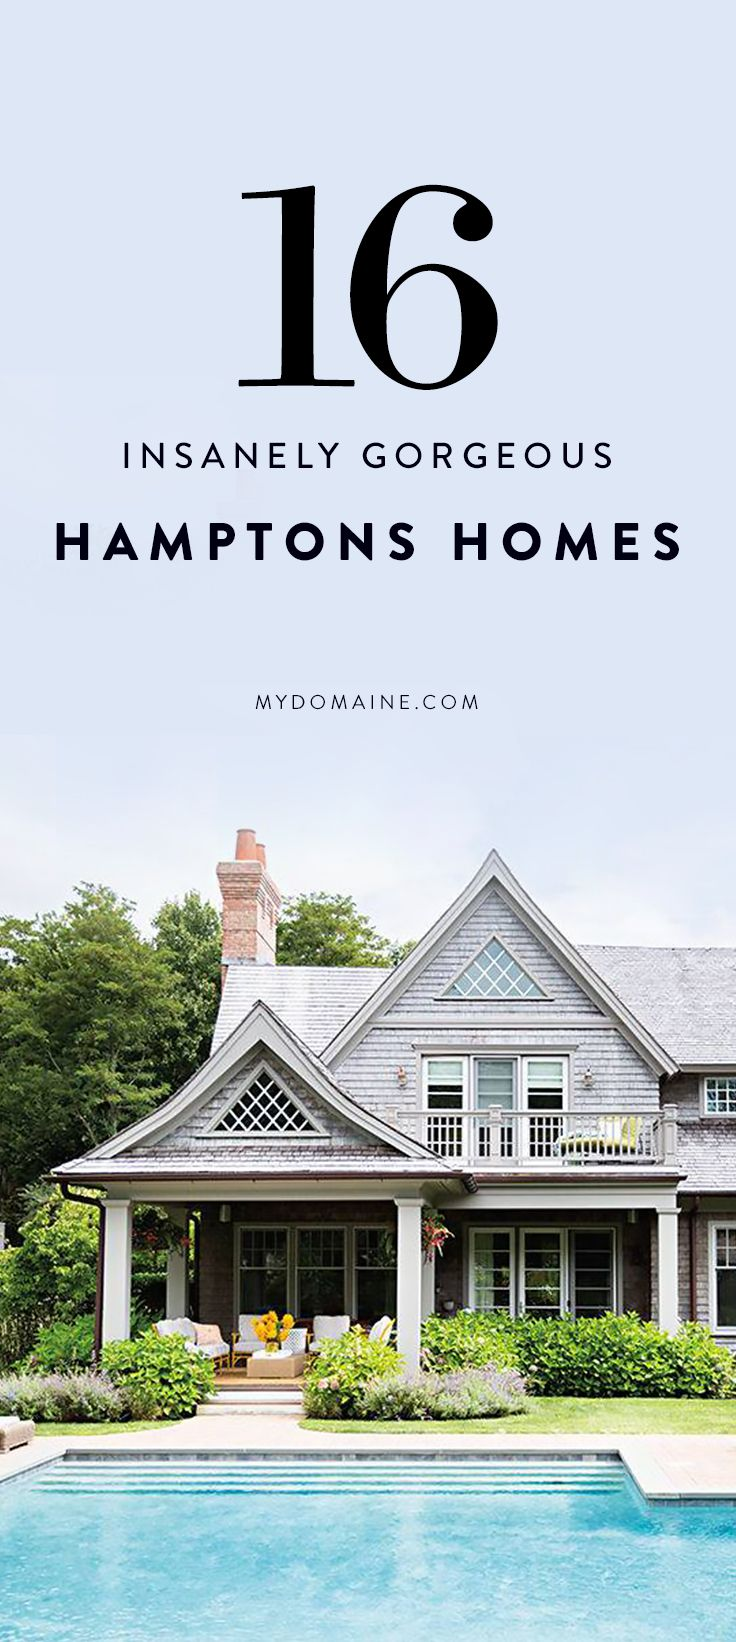 Hamptons beach house with elegant metal screen modern house designs - The Dreamiest Hamptons Beach Homes You Ve Ever Seen